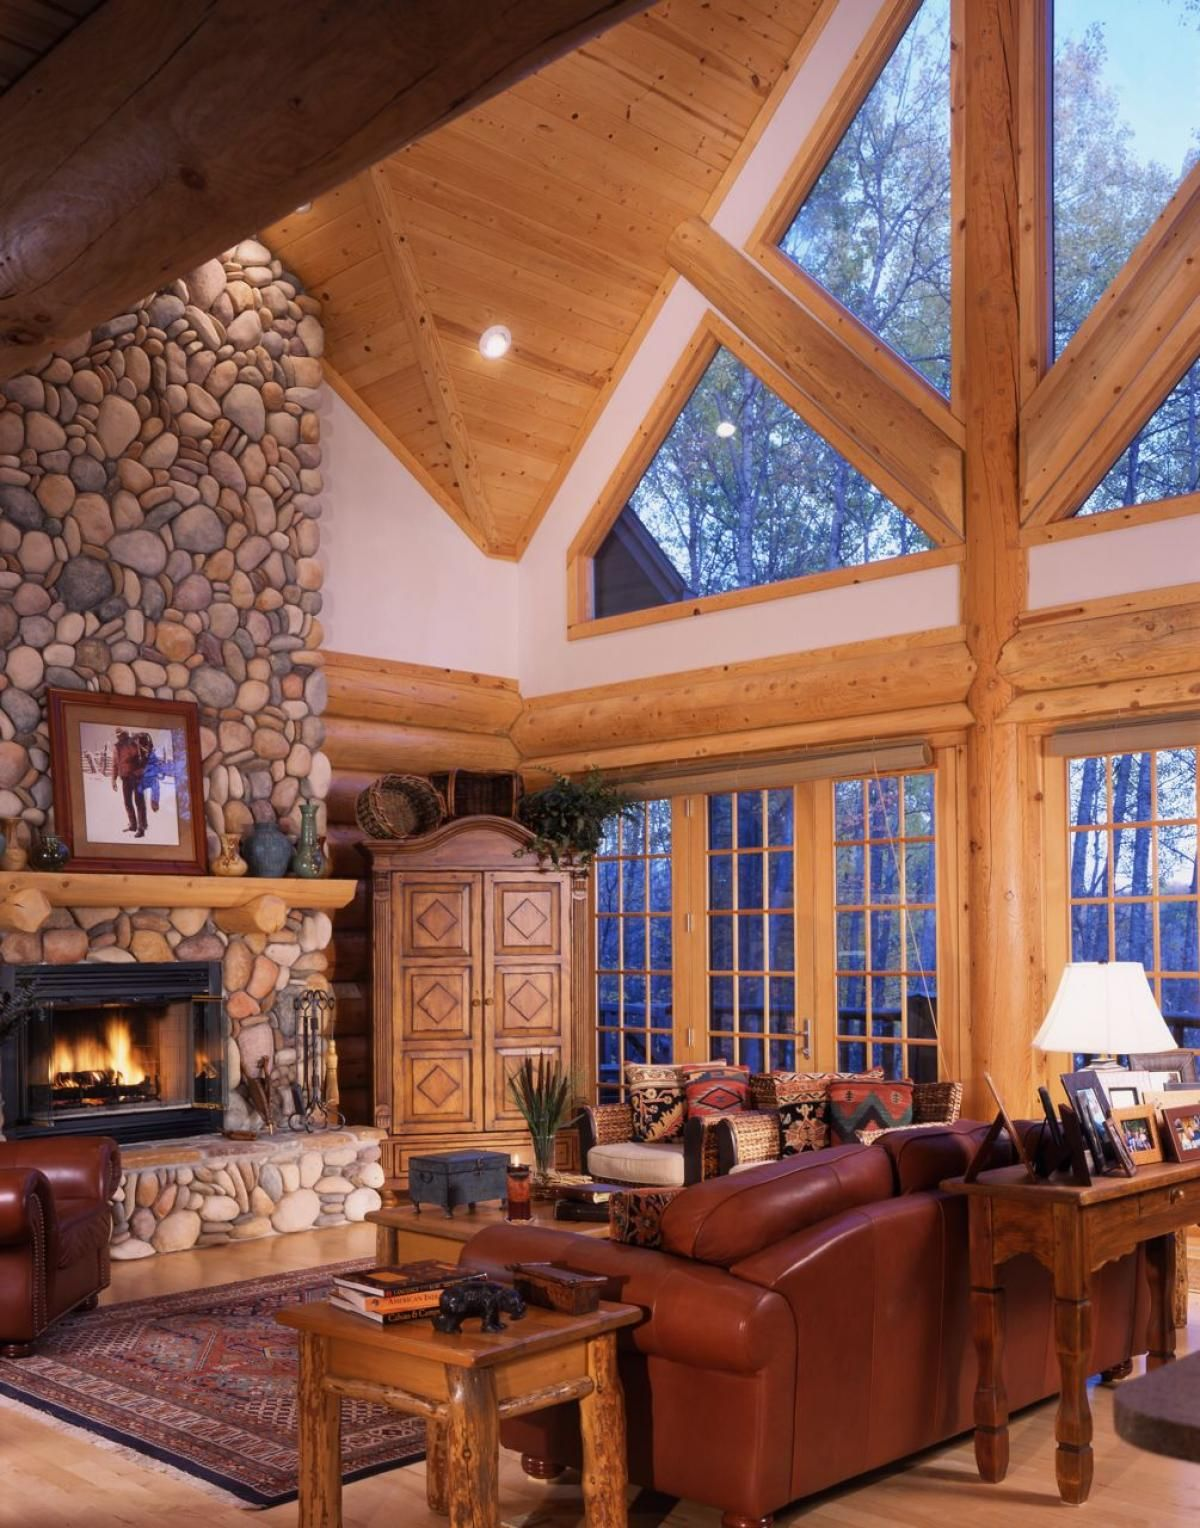 Home Interior Design Paint Ideas: Log Home Interiors, Log Home